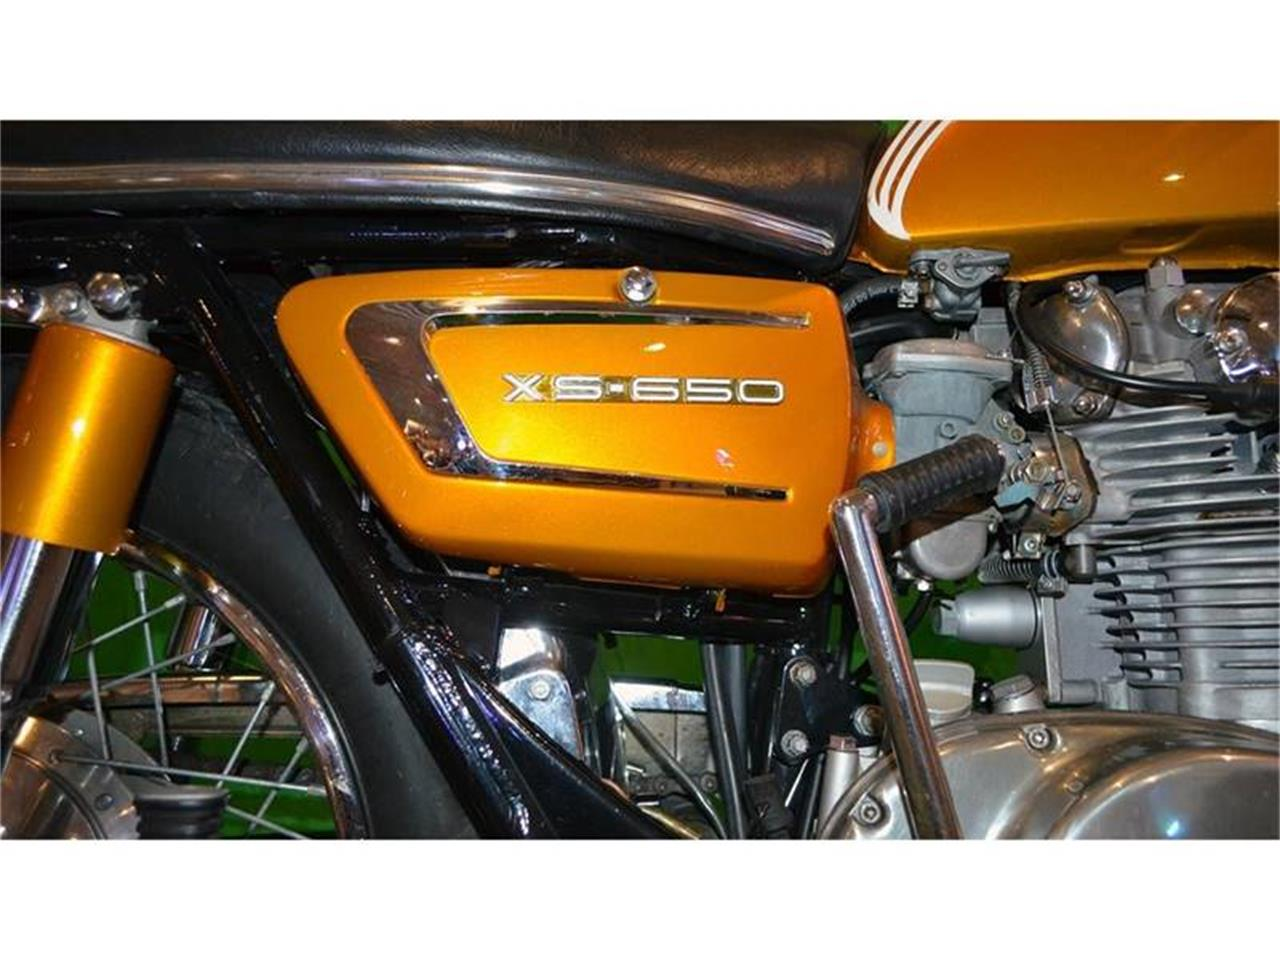 For Sale: 1971 Yamaha XS650 in Conroe, Texas